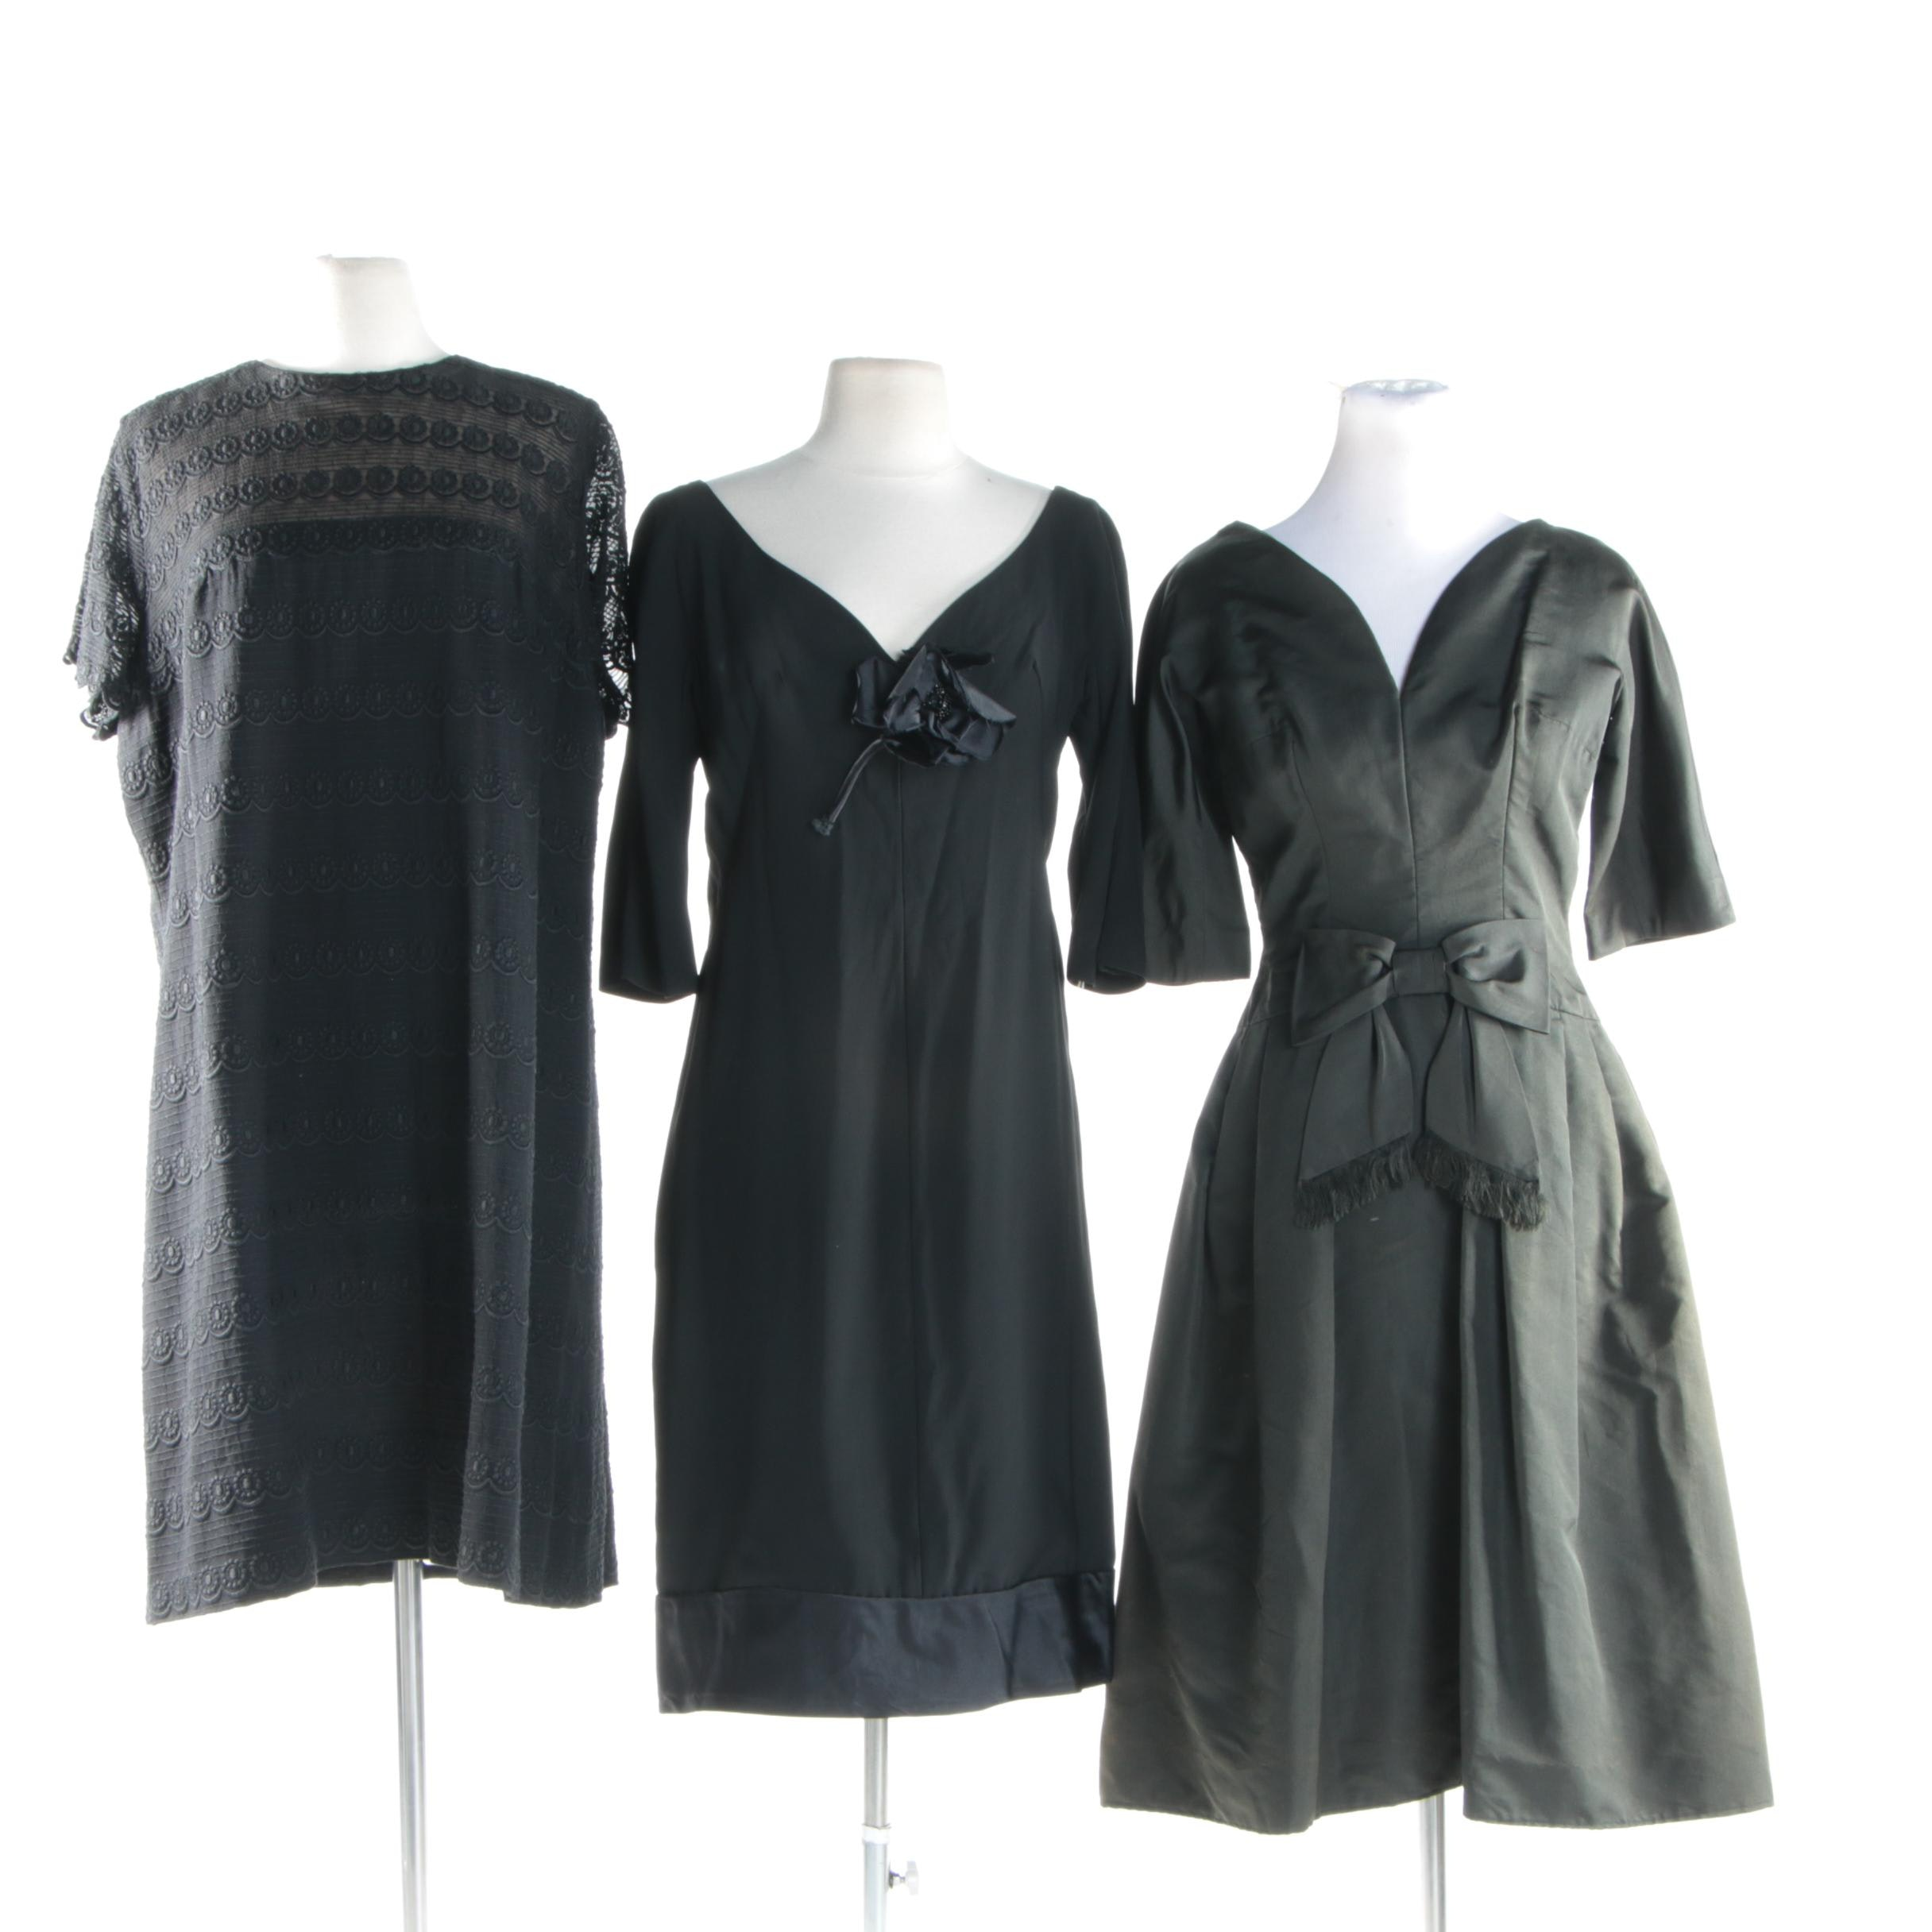 1950s and 1960s Vintage Black Cocktail Dresses Including Embroidered Details